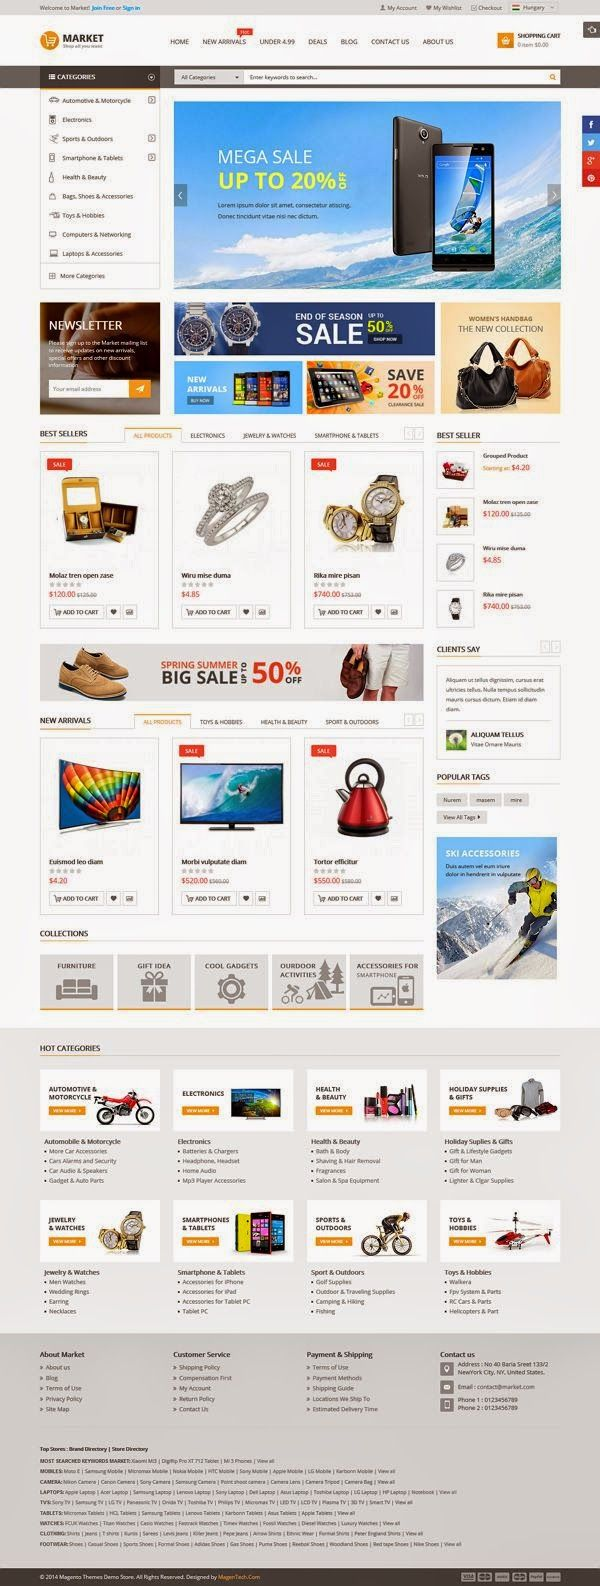 Market is a responsive multipurpose #Magento theme which is fully customizable and suitable for any kind of #onlineshop. This theme comes with a lots of color styles. Allows you to control appearance of your product such as product name, image, reviews and other useful information in organic Google search results, increasing click through rates and improve quality #traffic to your store.